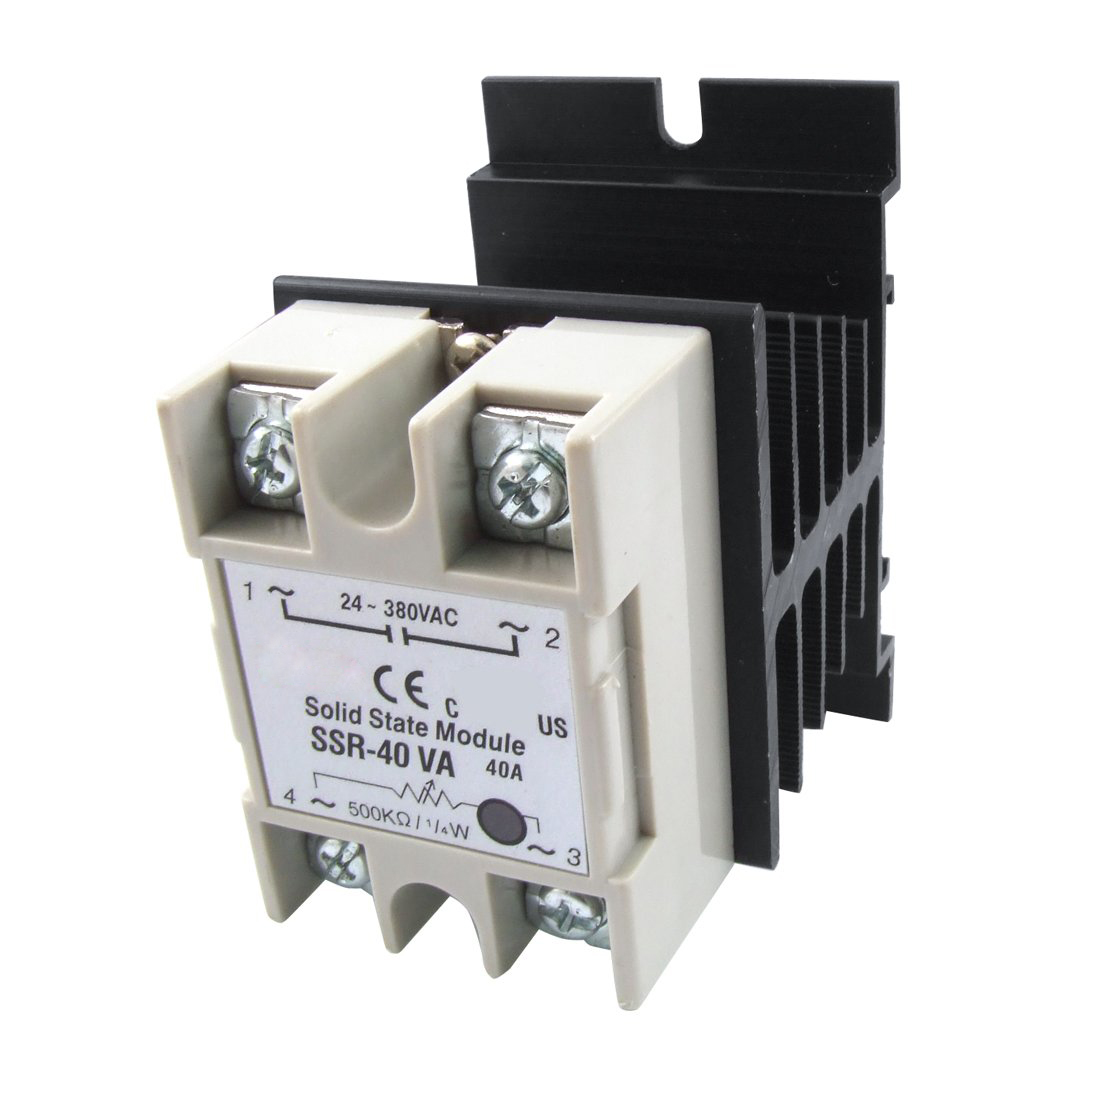 VolTage Resistance Regulator Solid State Relay SSR 40A 24-380V AC w Heat SInk normally open single phase solid state relay ssr mgr 1 d48120 120a control dc ac 24 480v